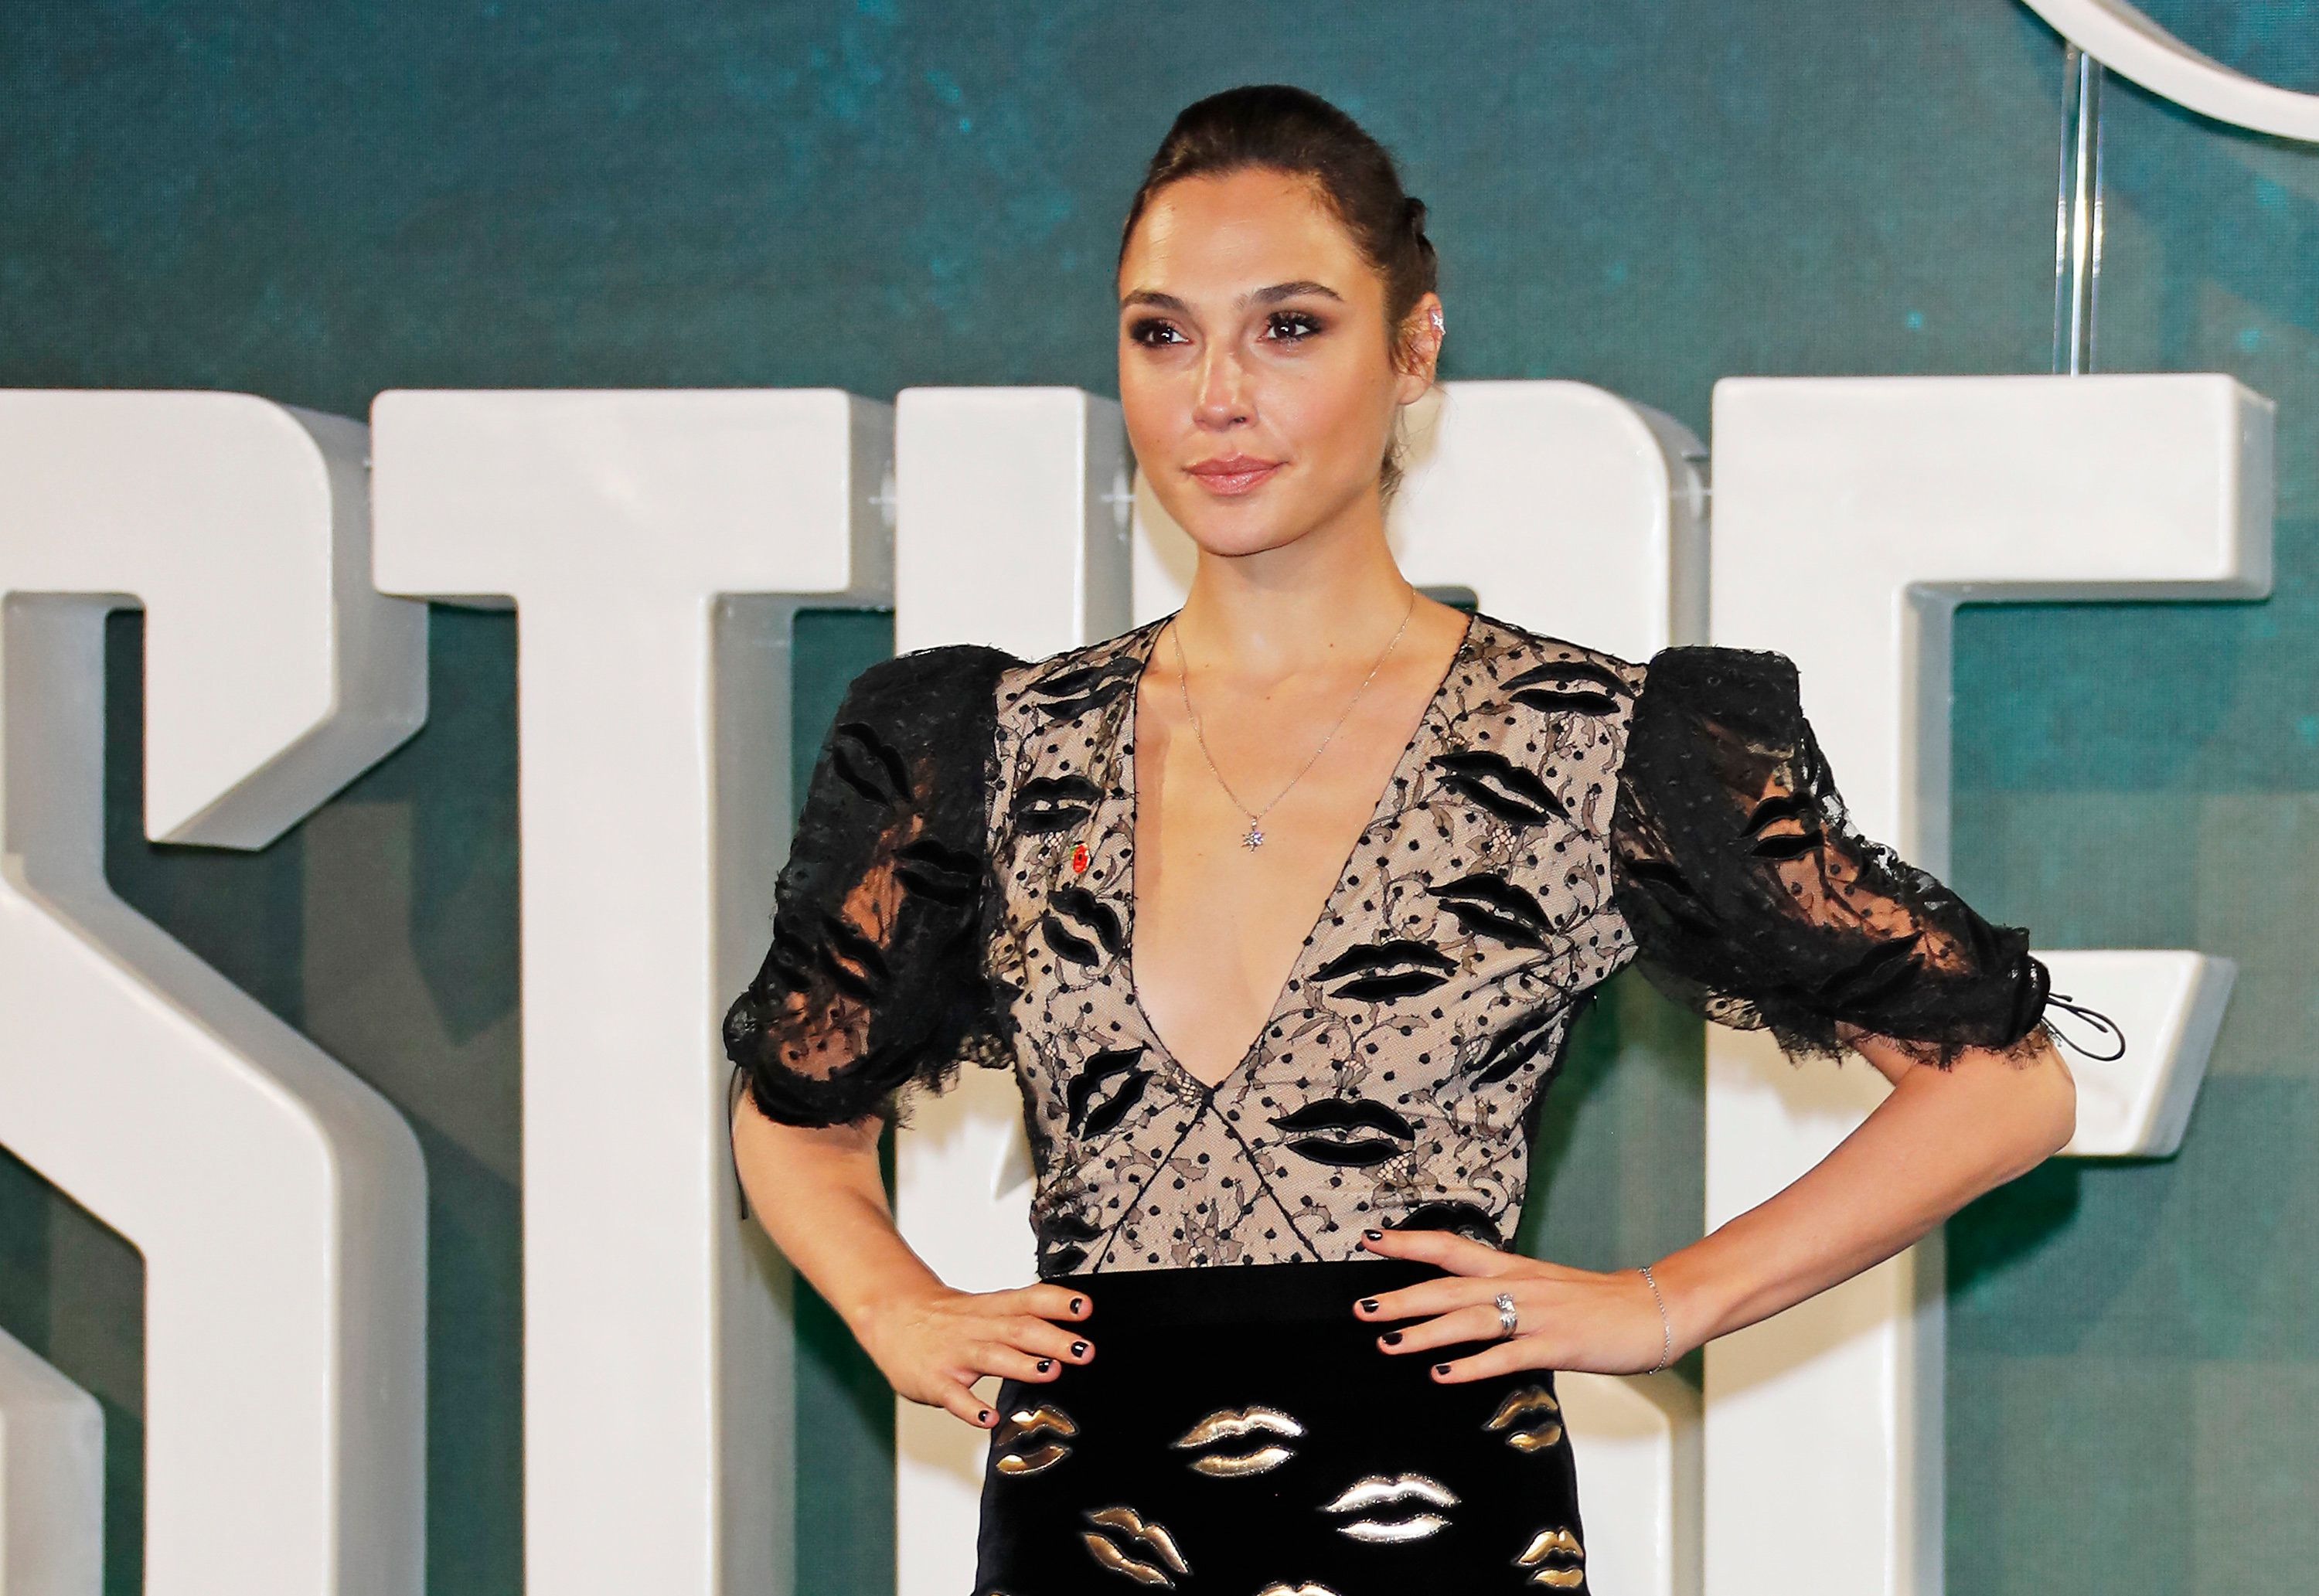 Actress Gal Gadothas confirmed thataccused sexual harasser Brett Ratner will not be involved...